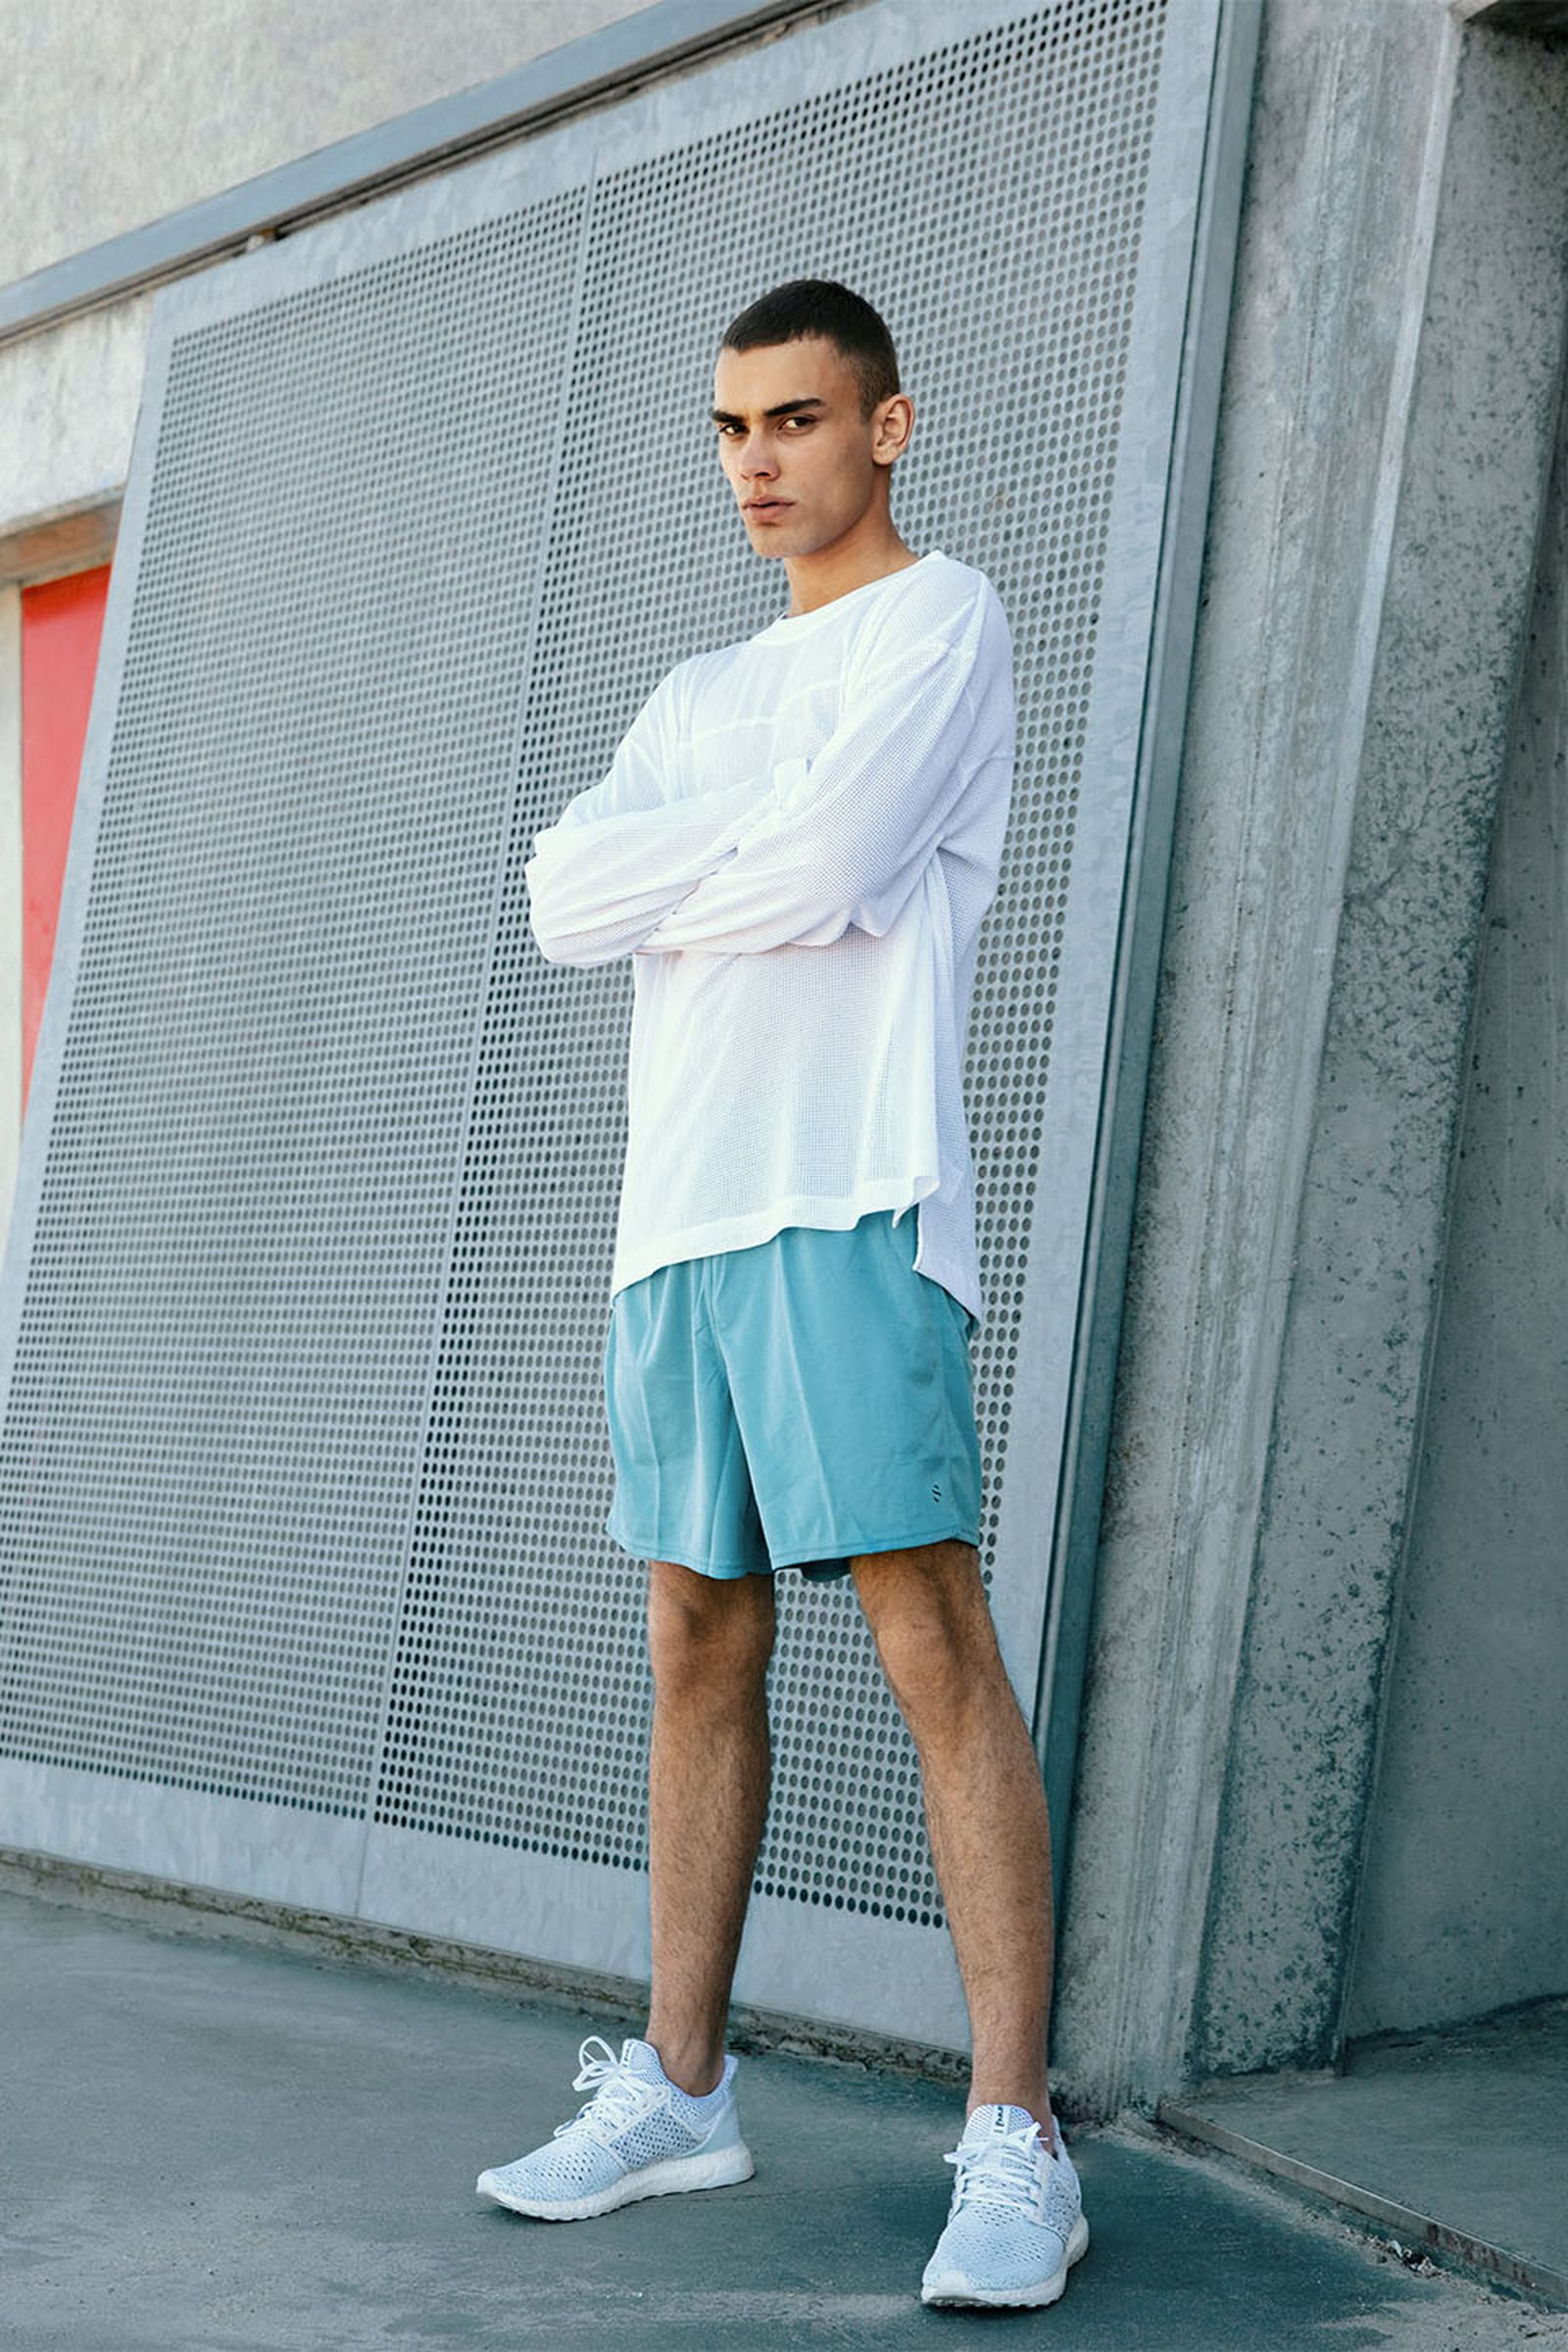 adidas-parley-run-for-the-oceans-2018-06